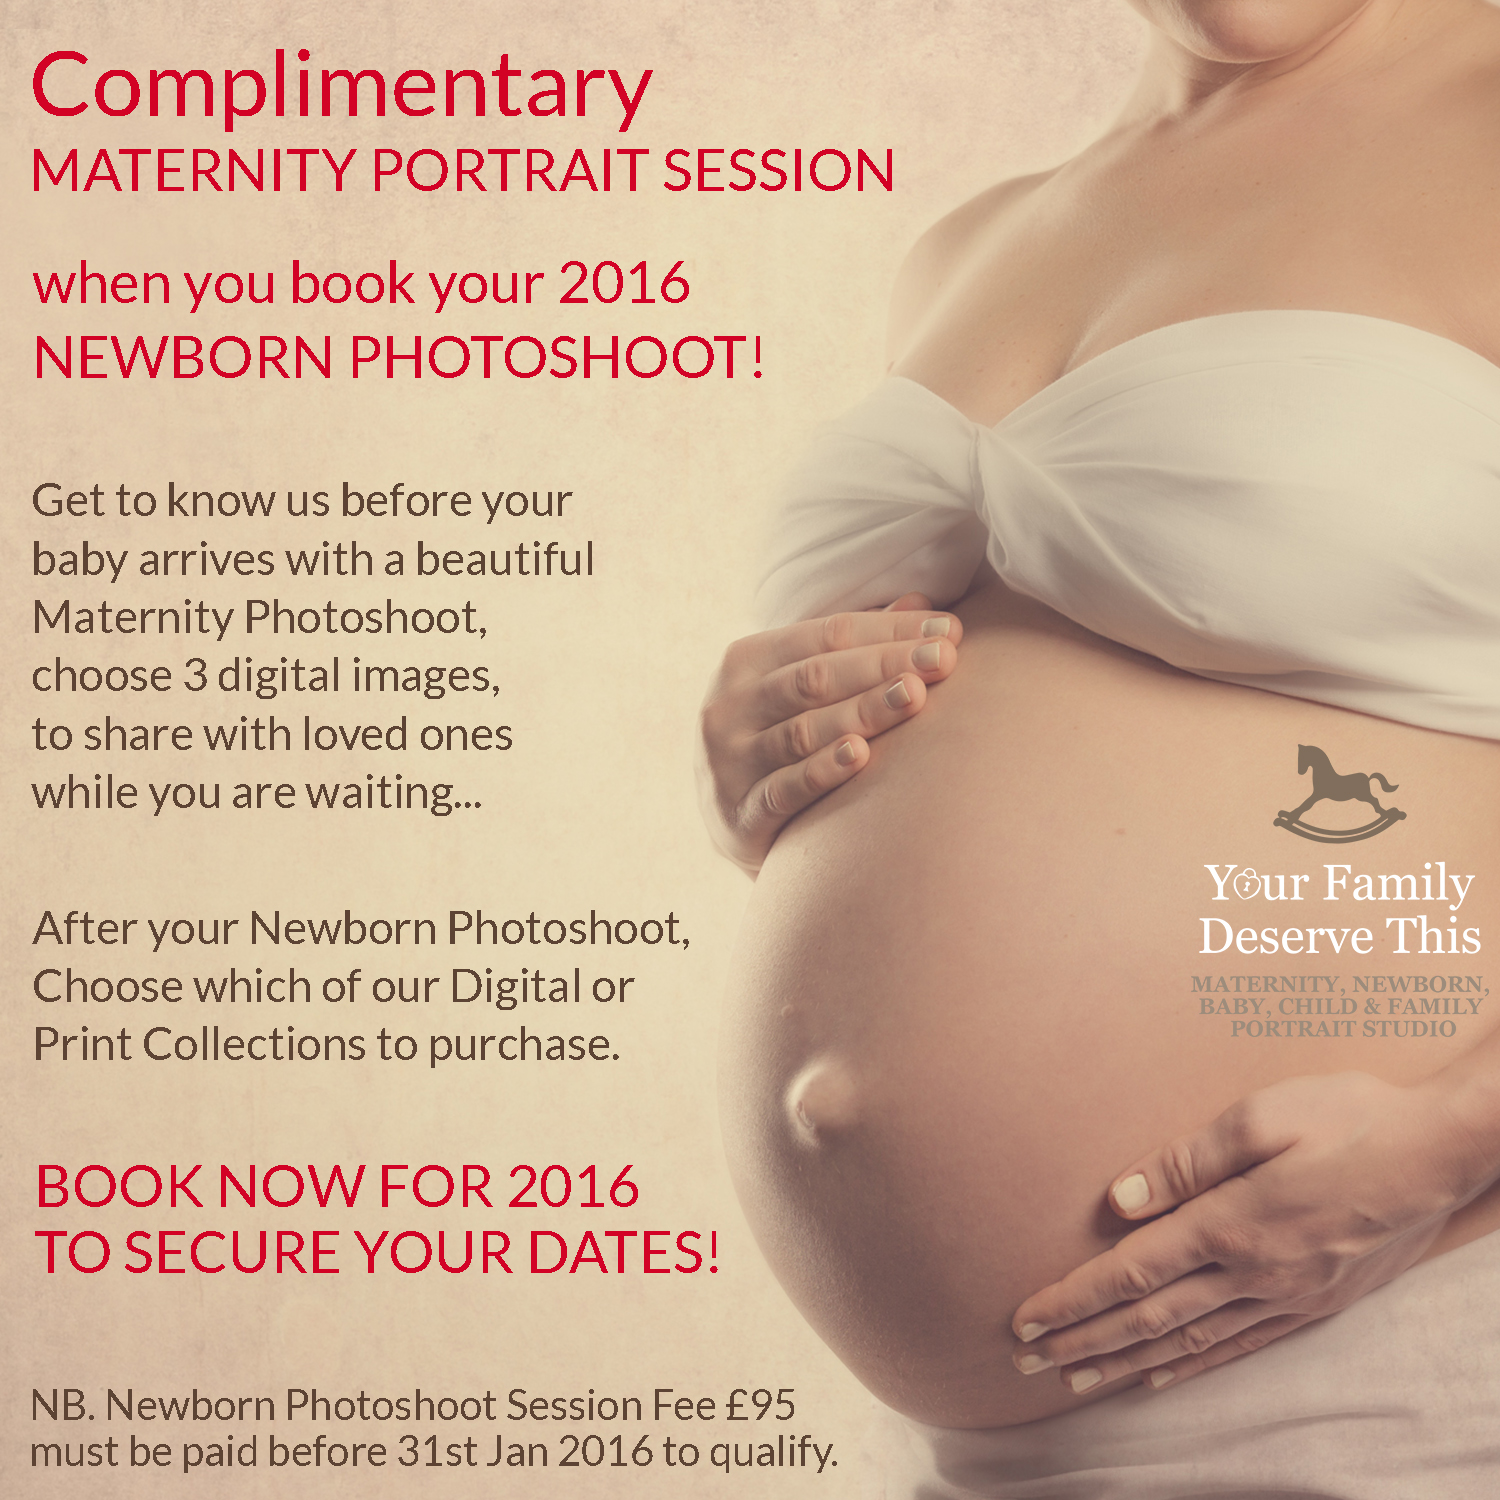 Complimentary Maternity Portrait Session with every 2016 Newborn Photoshoot at Your Family Deserve This. Contact us on 01189811867 before 31st January 2016 to qualify.